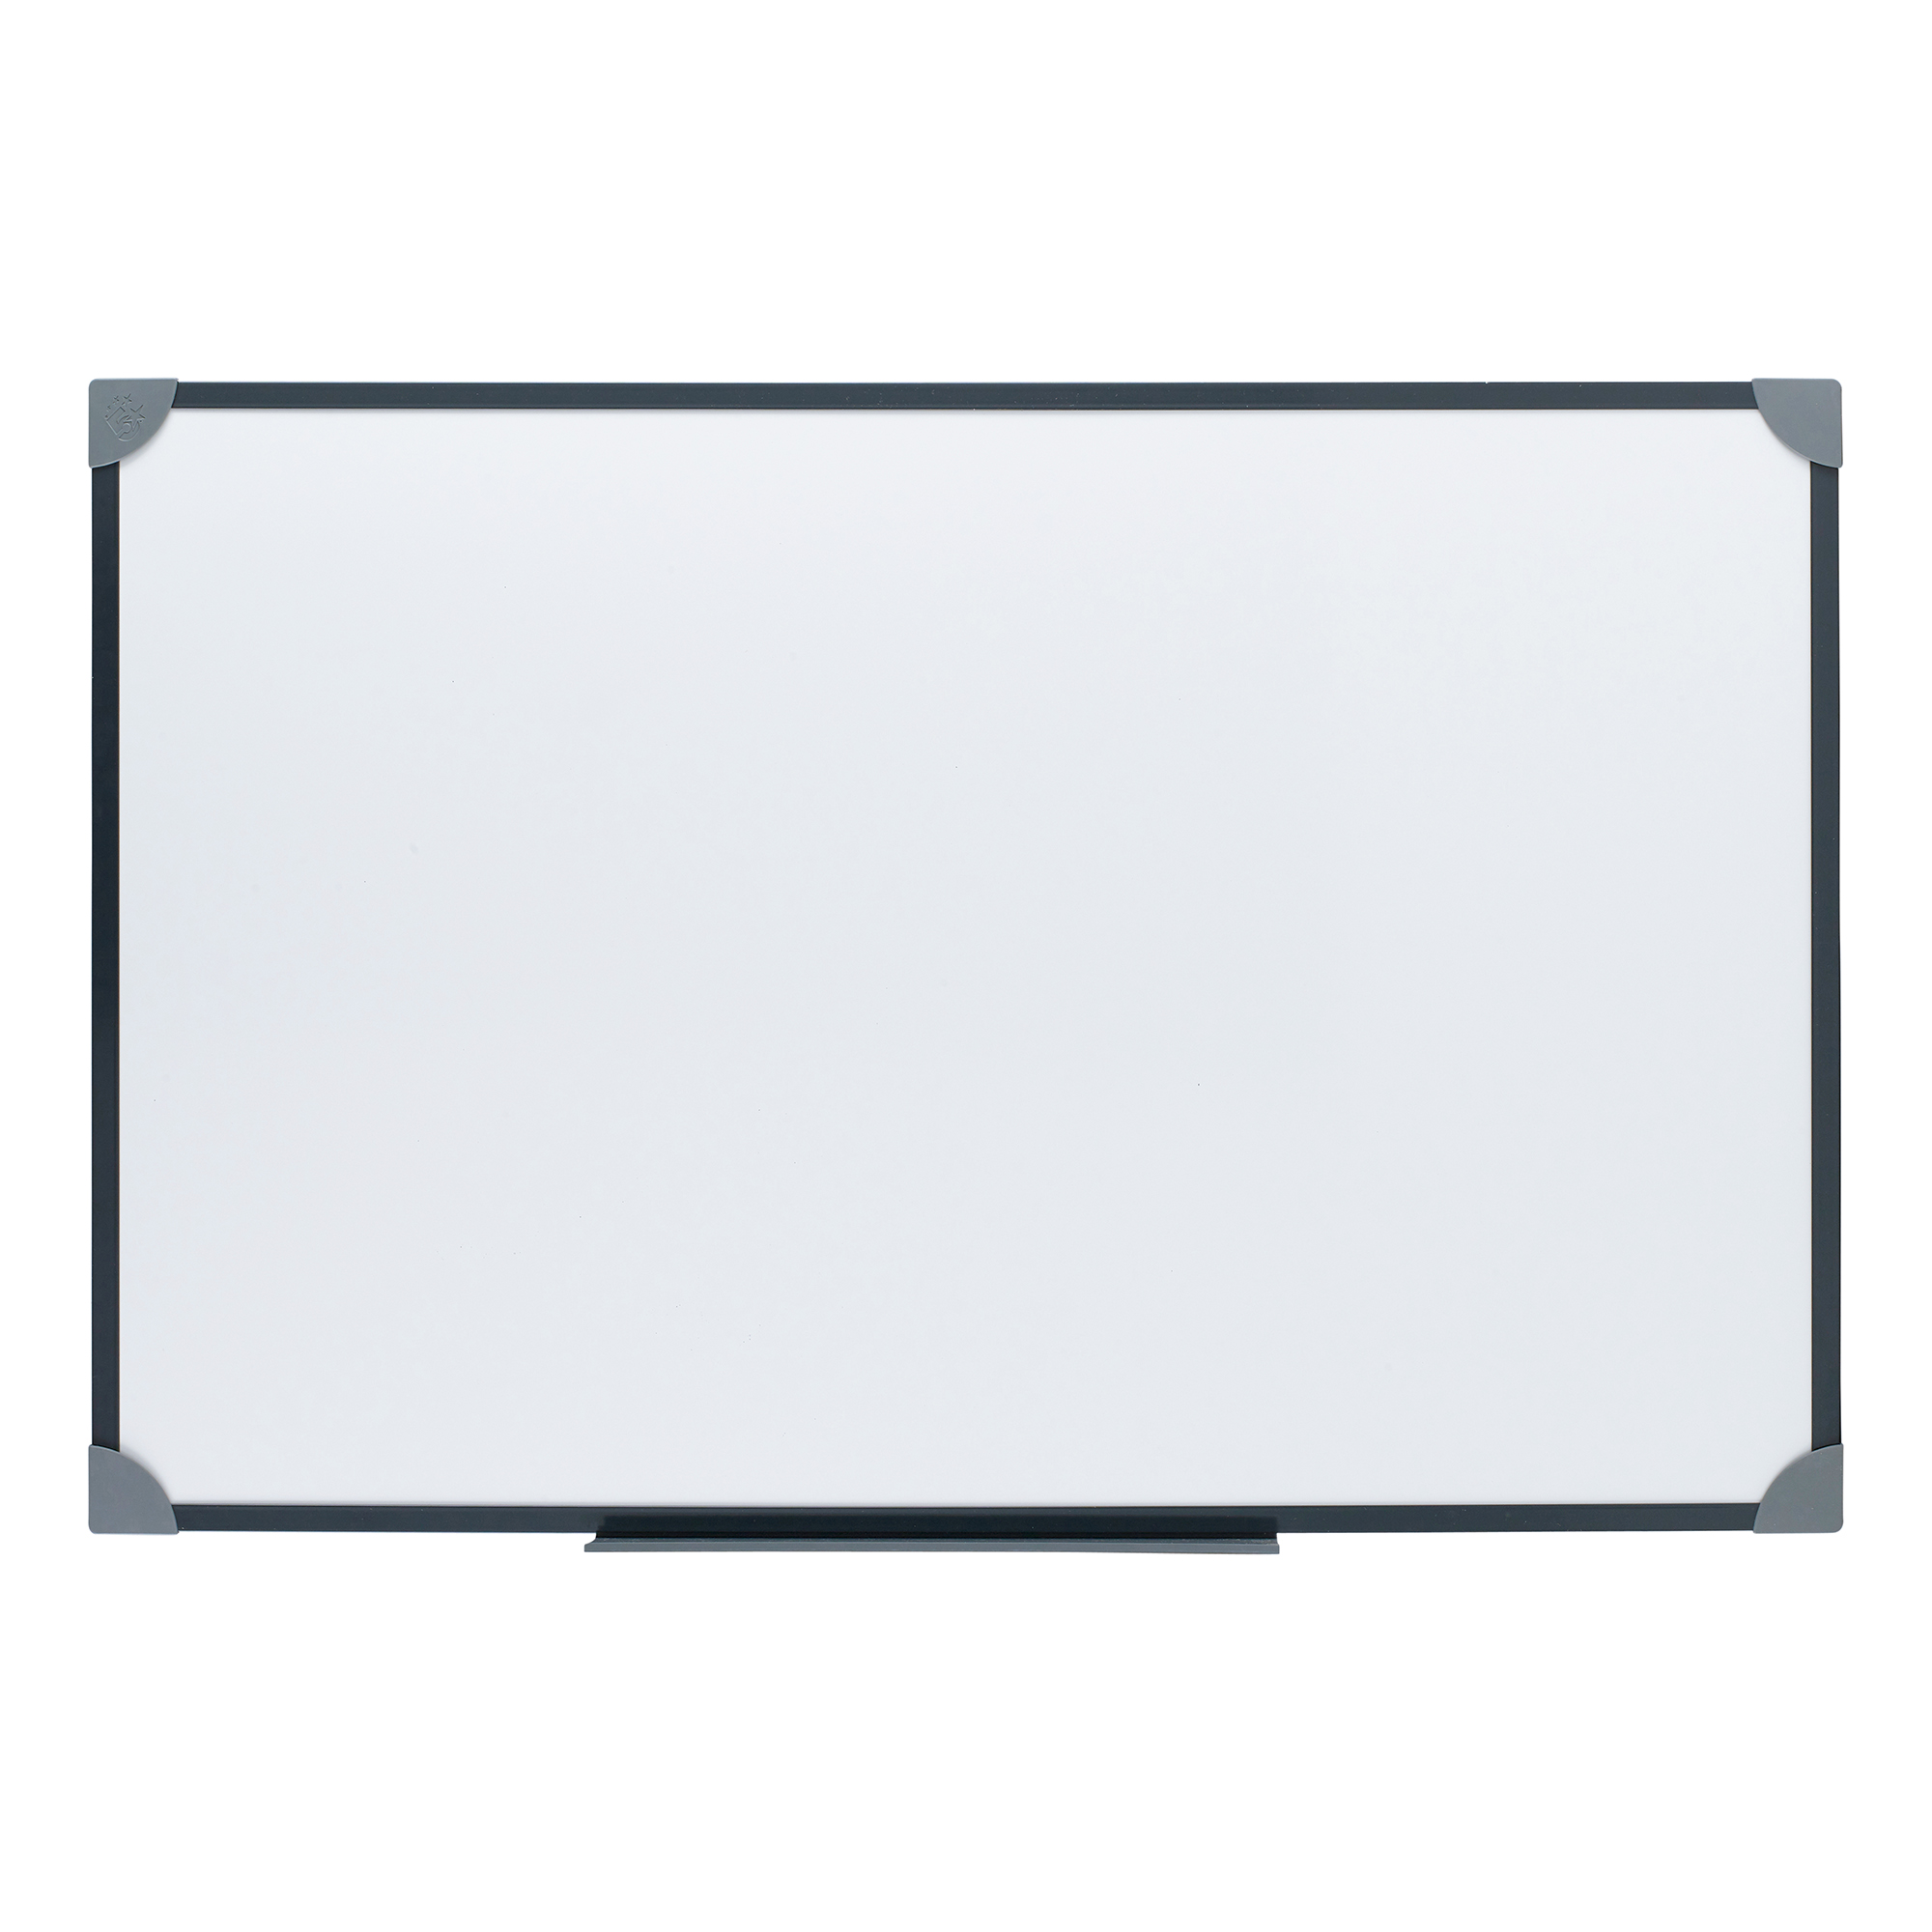 Magnetic 5 Star Office Magnetic Drywipe Board Steel Trim with Fixing Kit and Detachable Pen Tray W900xH600mm